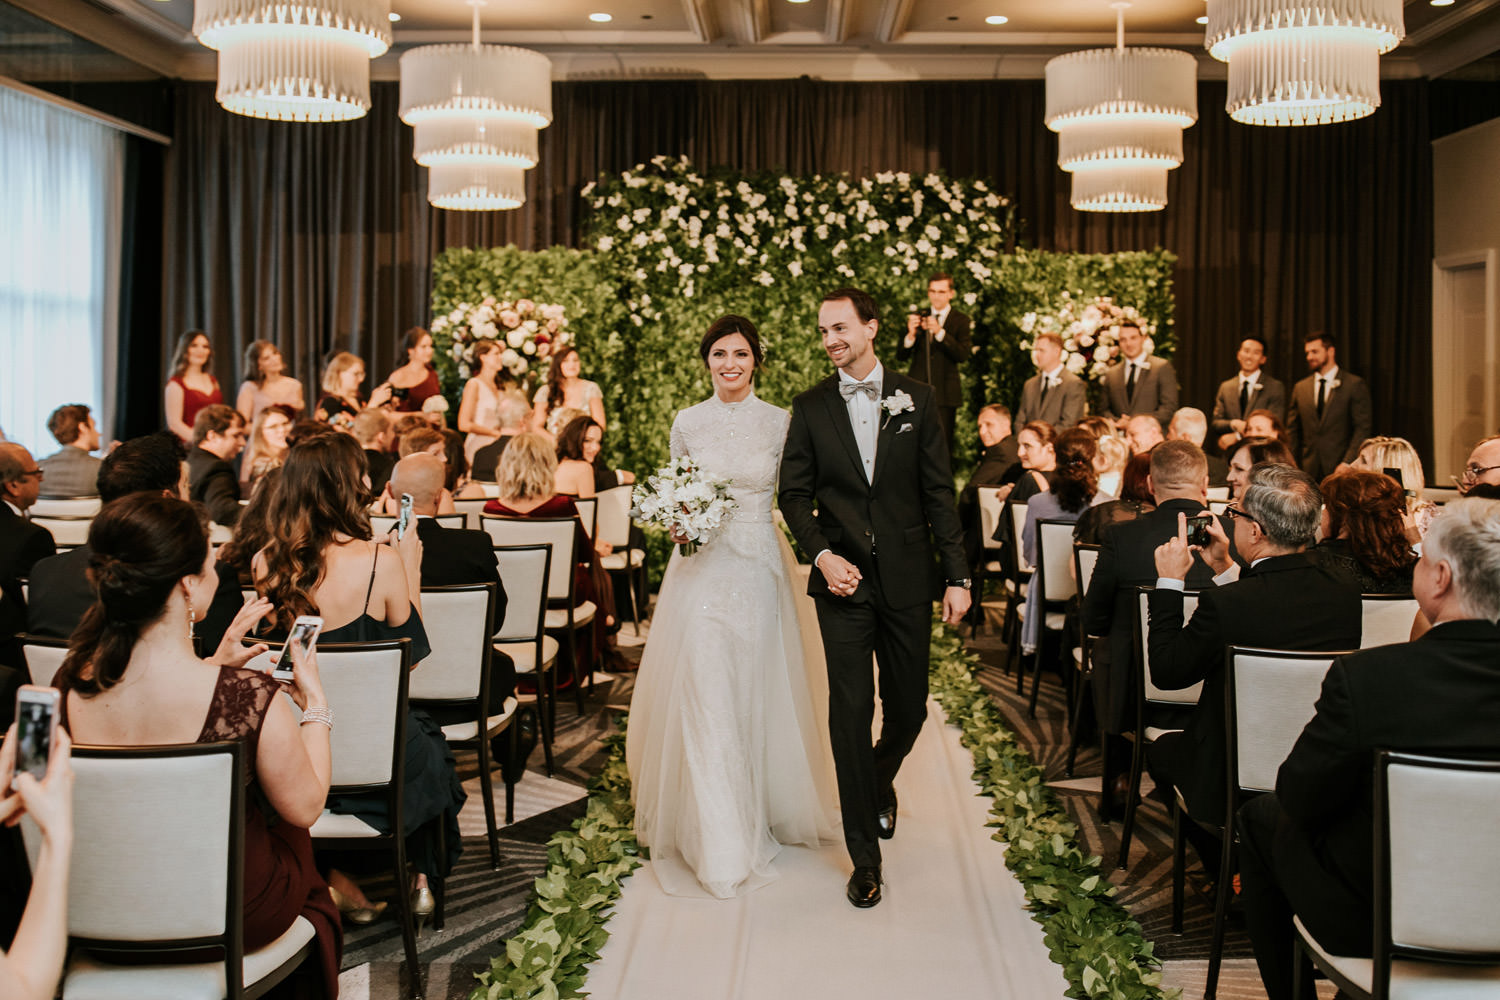 Bride and groom walk down the isle after the wedding ceremony at hotel gray in Chicago